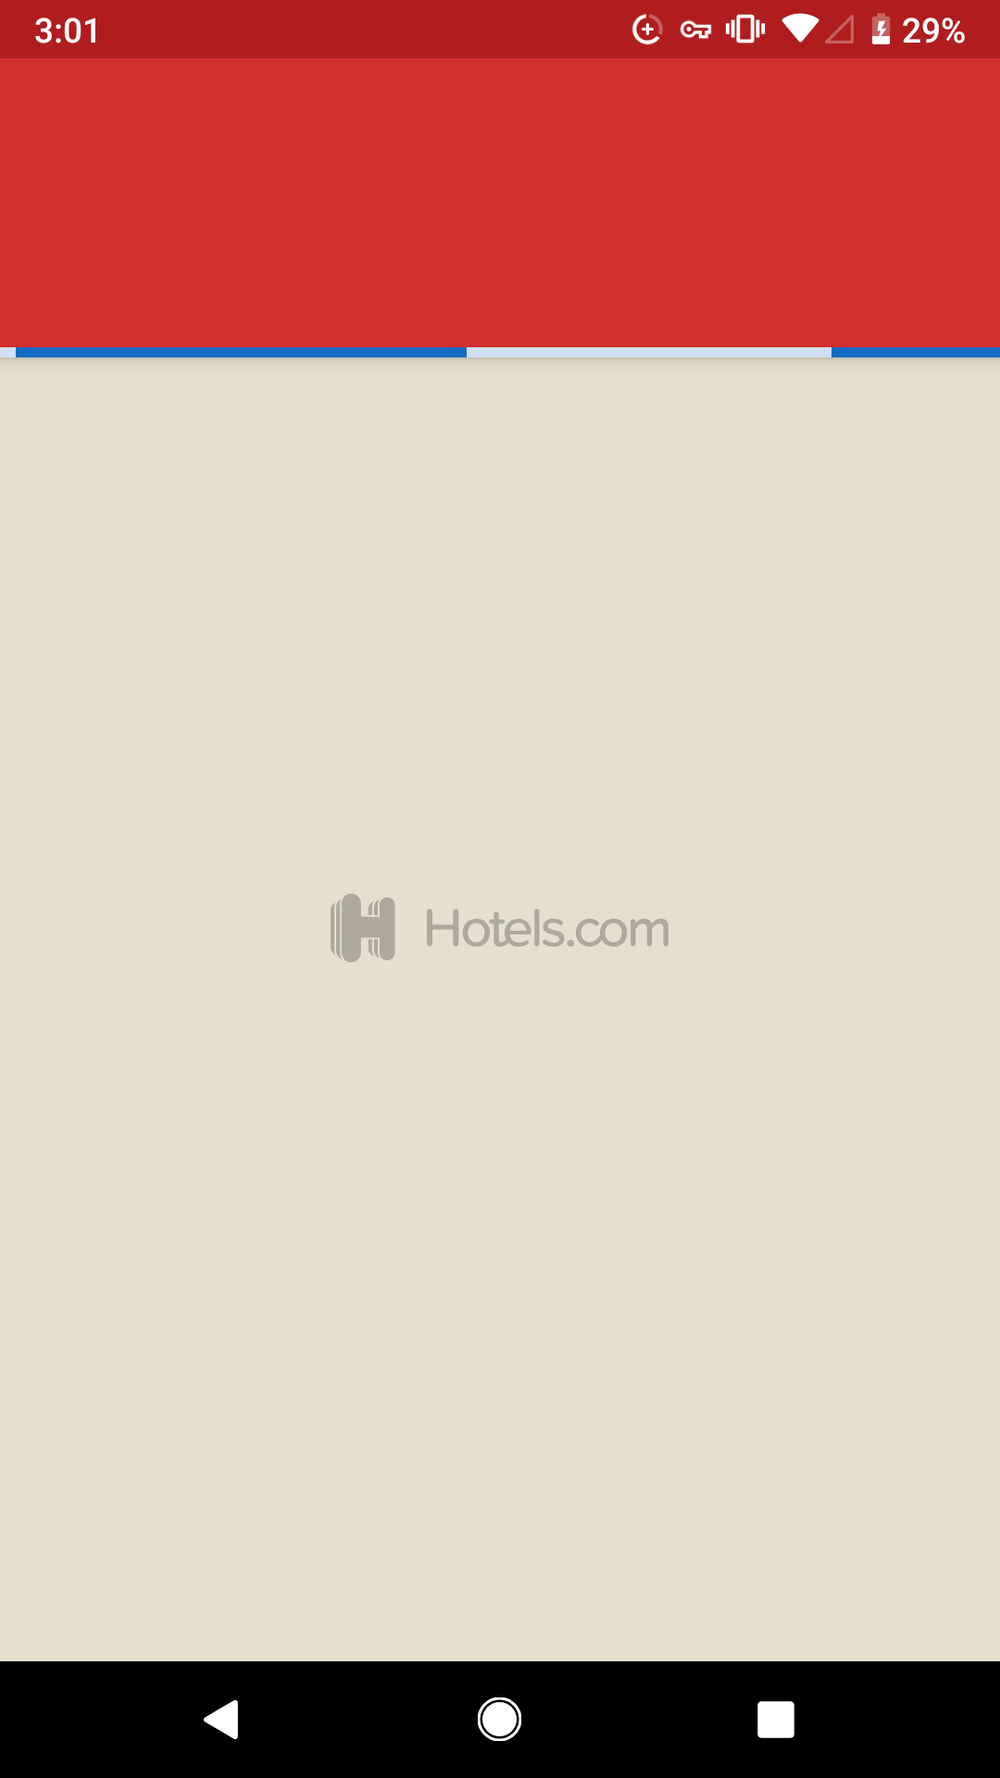 hotels.com_app_screenshot_loading_screen.png